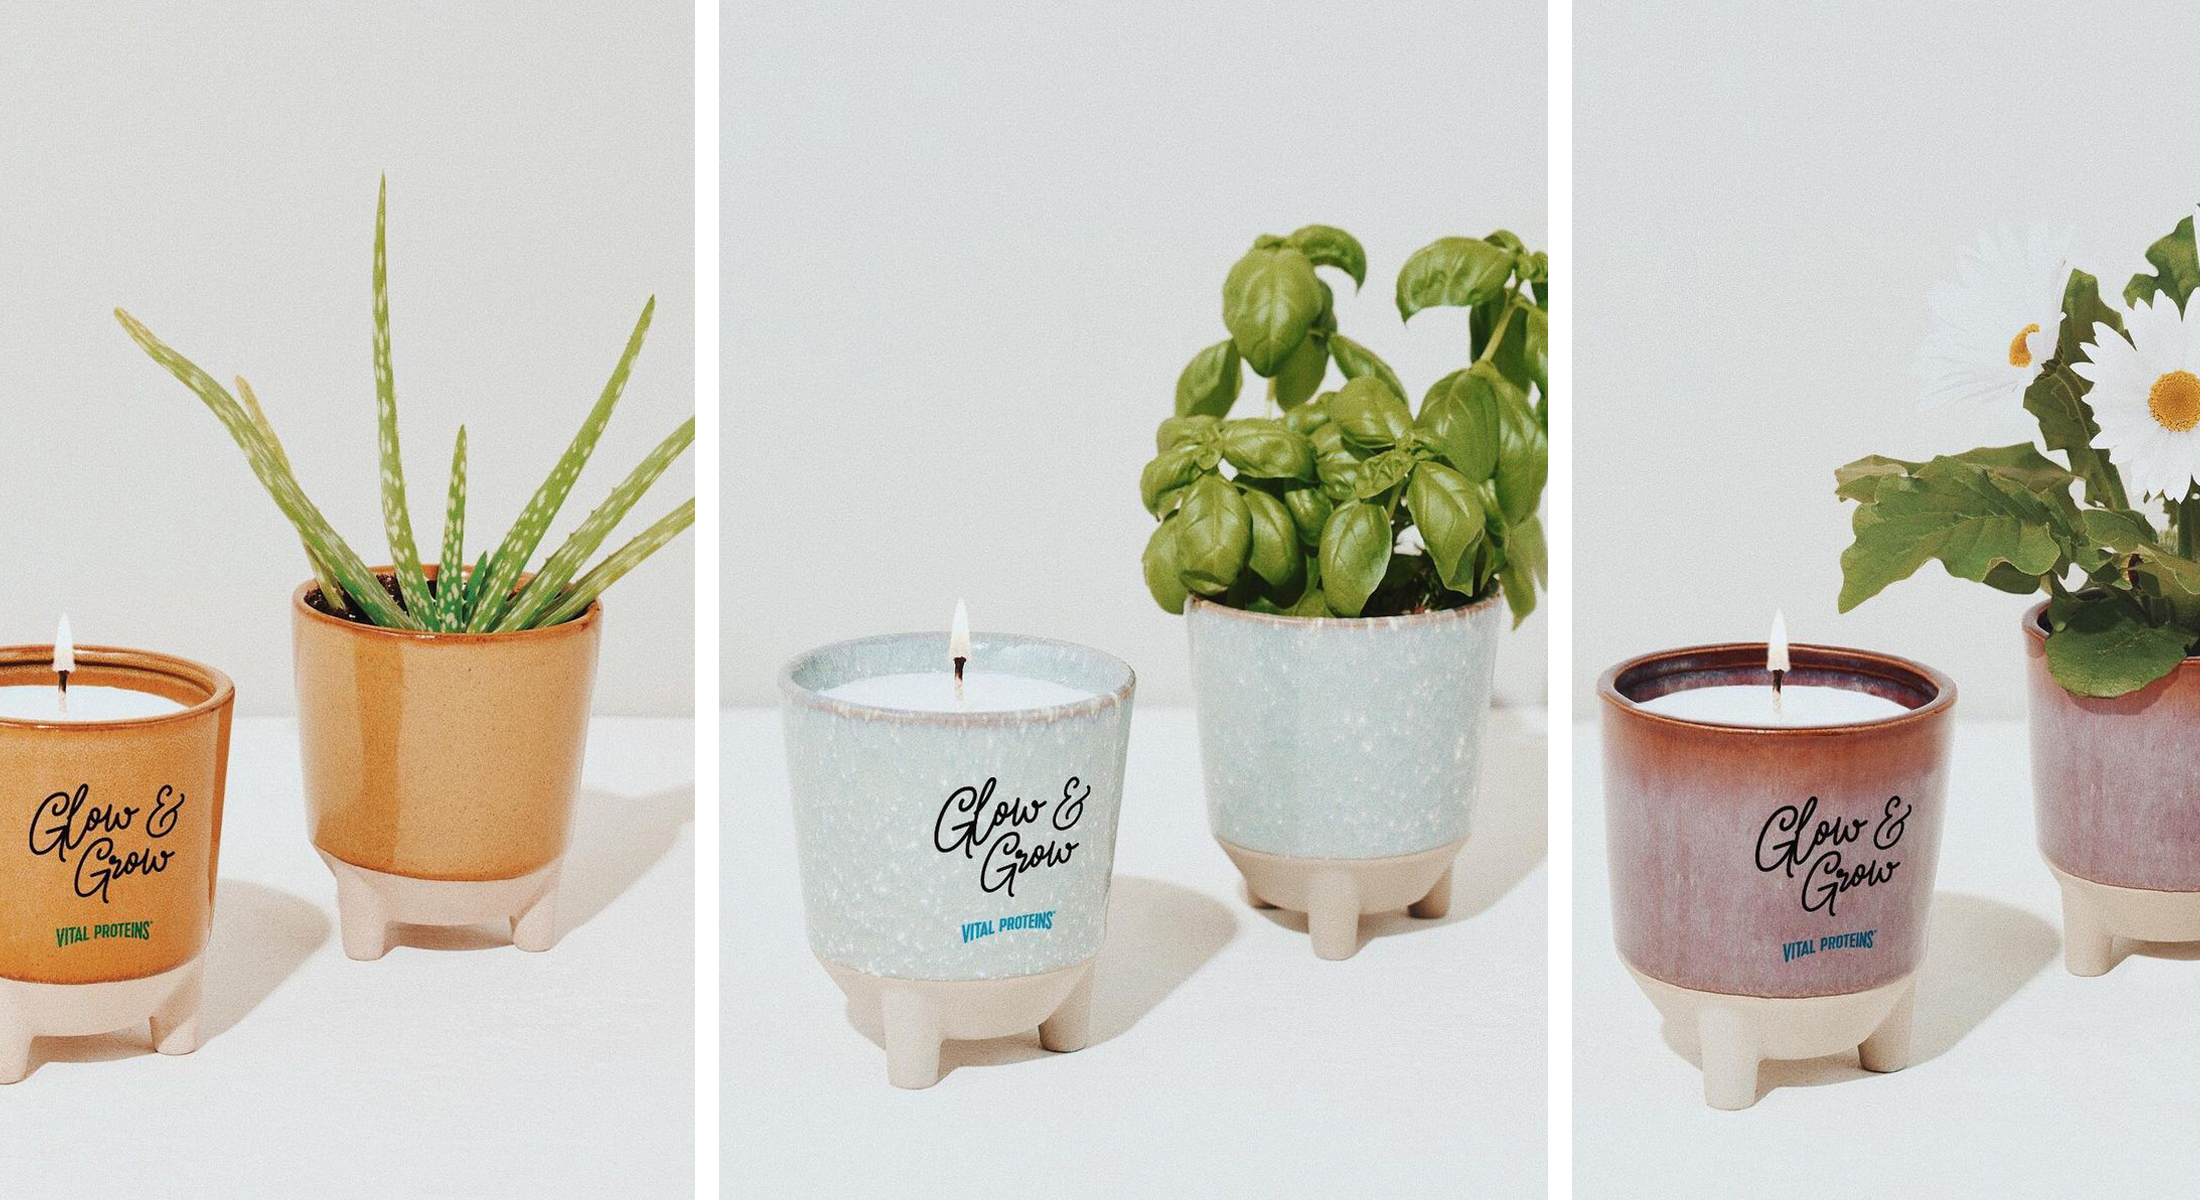 Modern Sprout Glow & Grow Gift Set